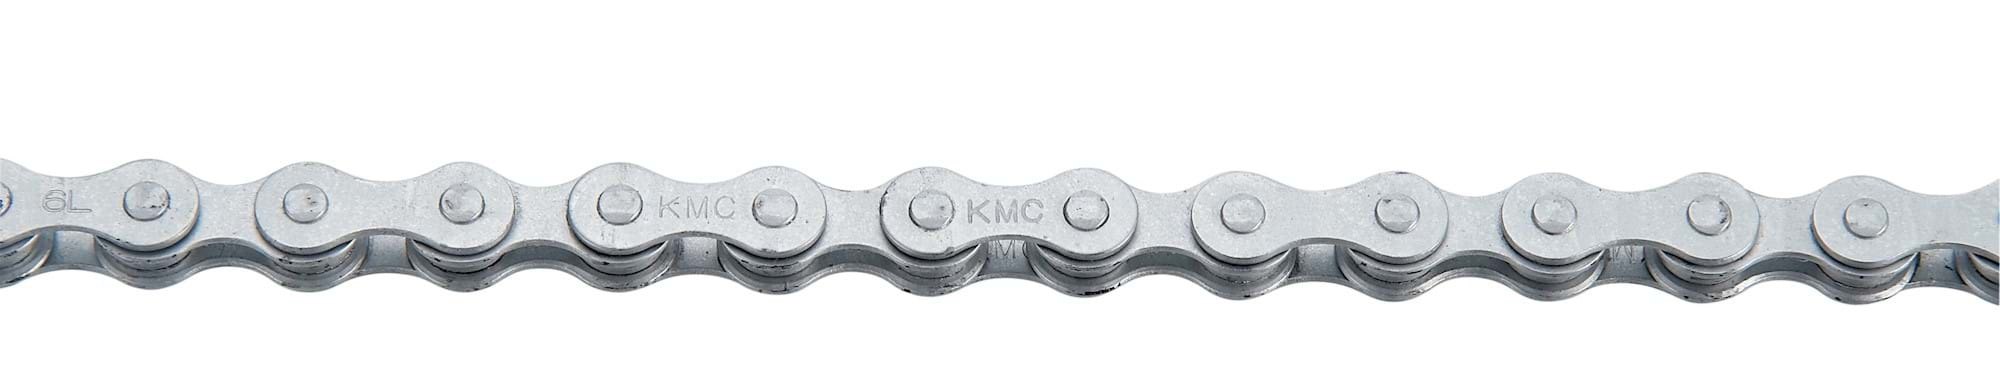 Kæde 1 speed KMC 410RB Rustbuster 1/2x1/8 til indv gear - 75020110 | Chains